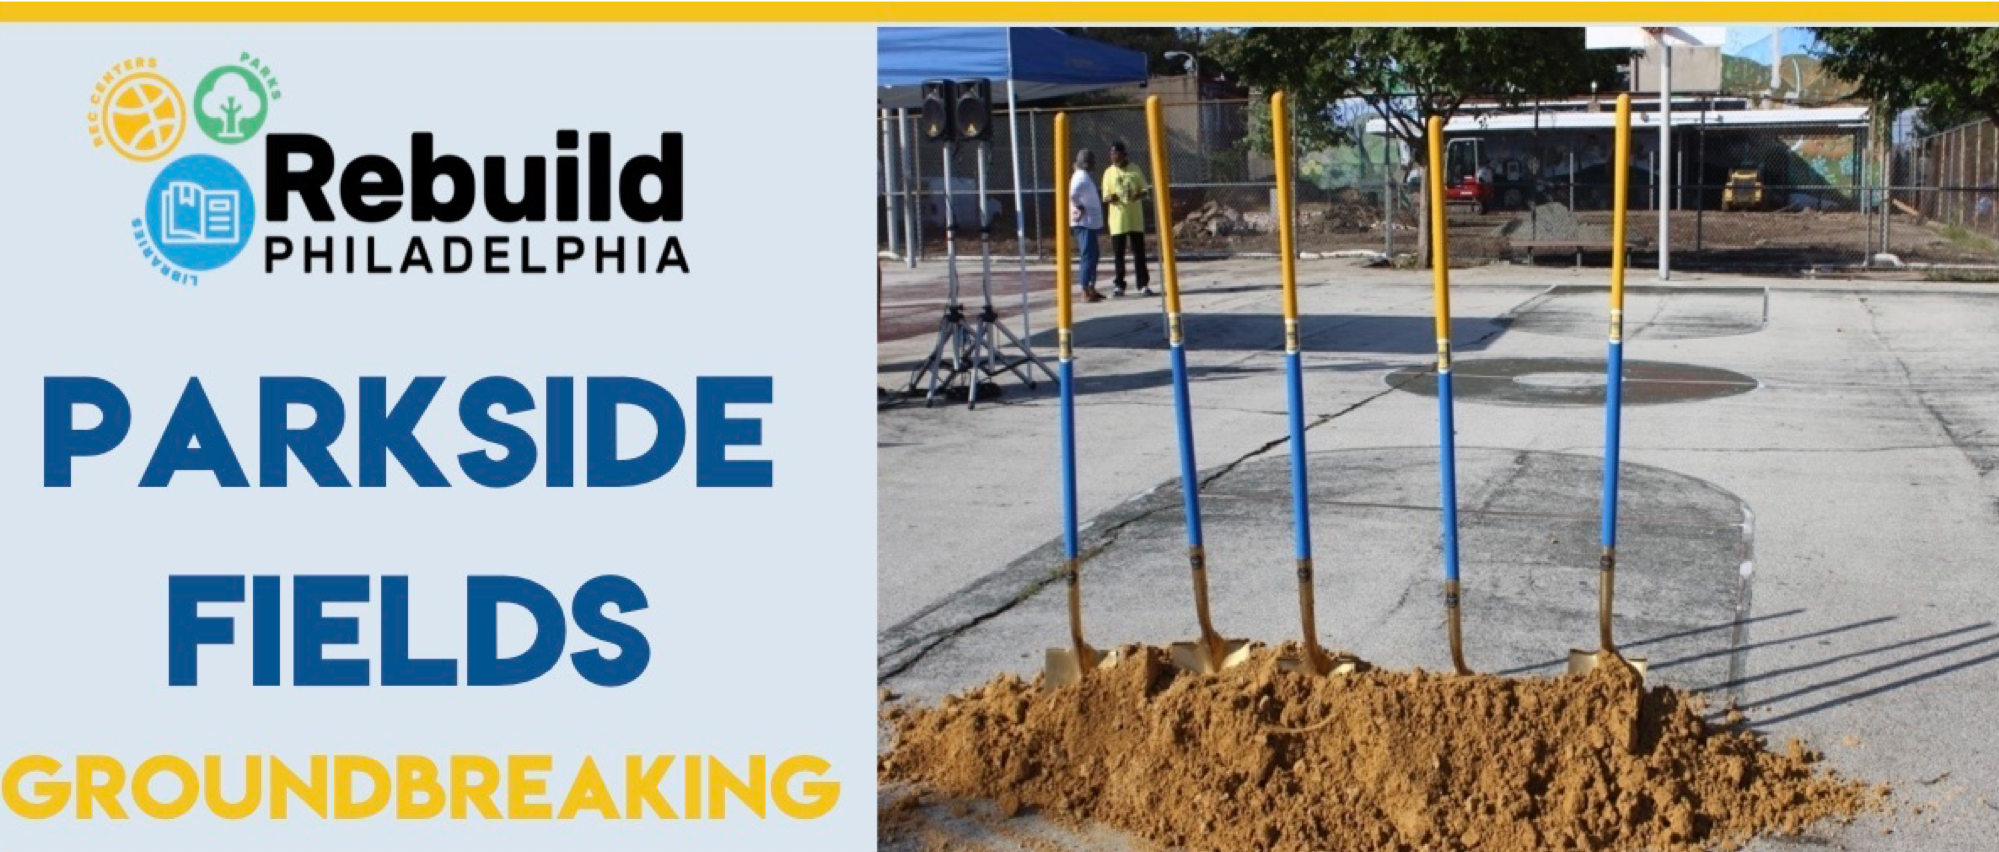 Parkside Groundbreaking